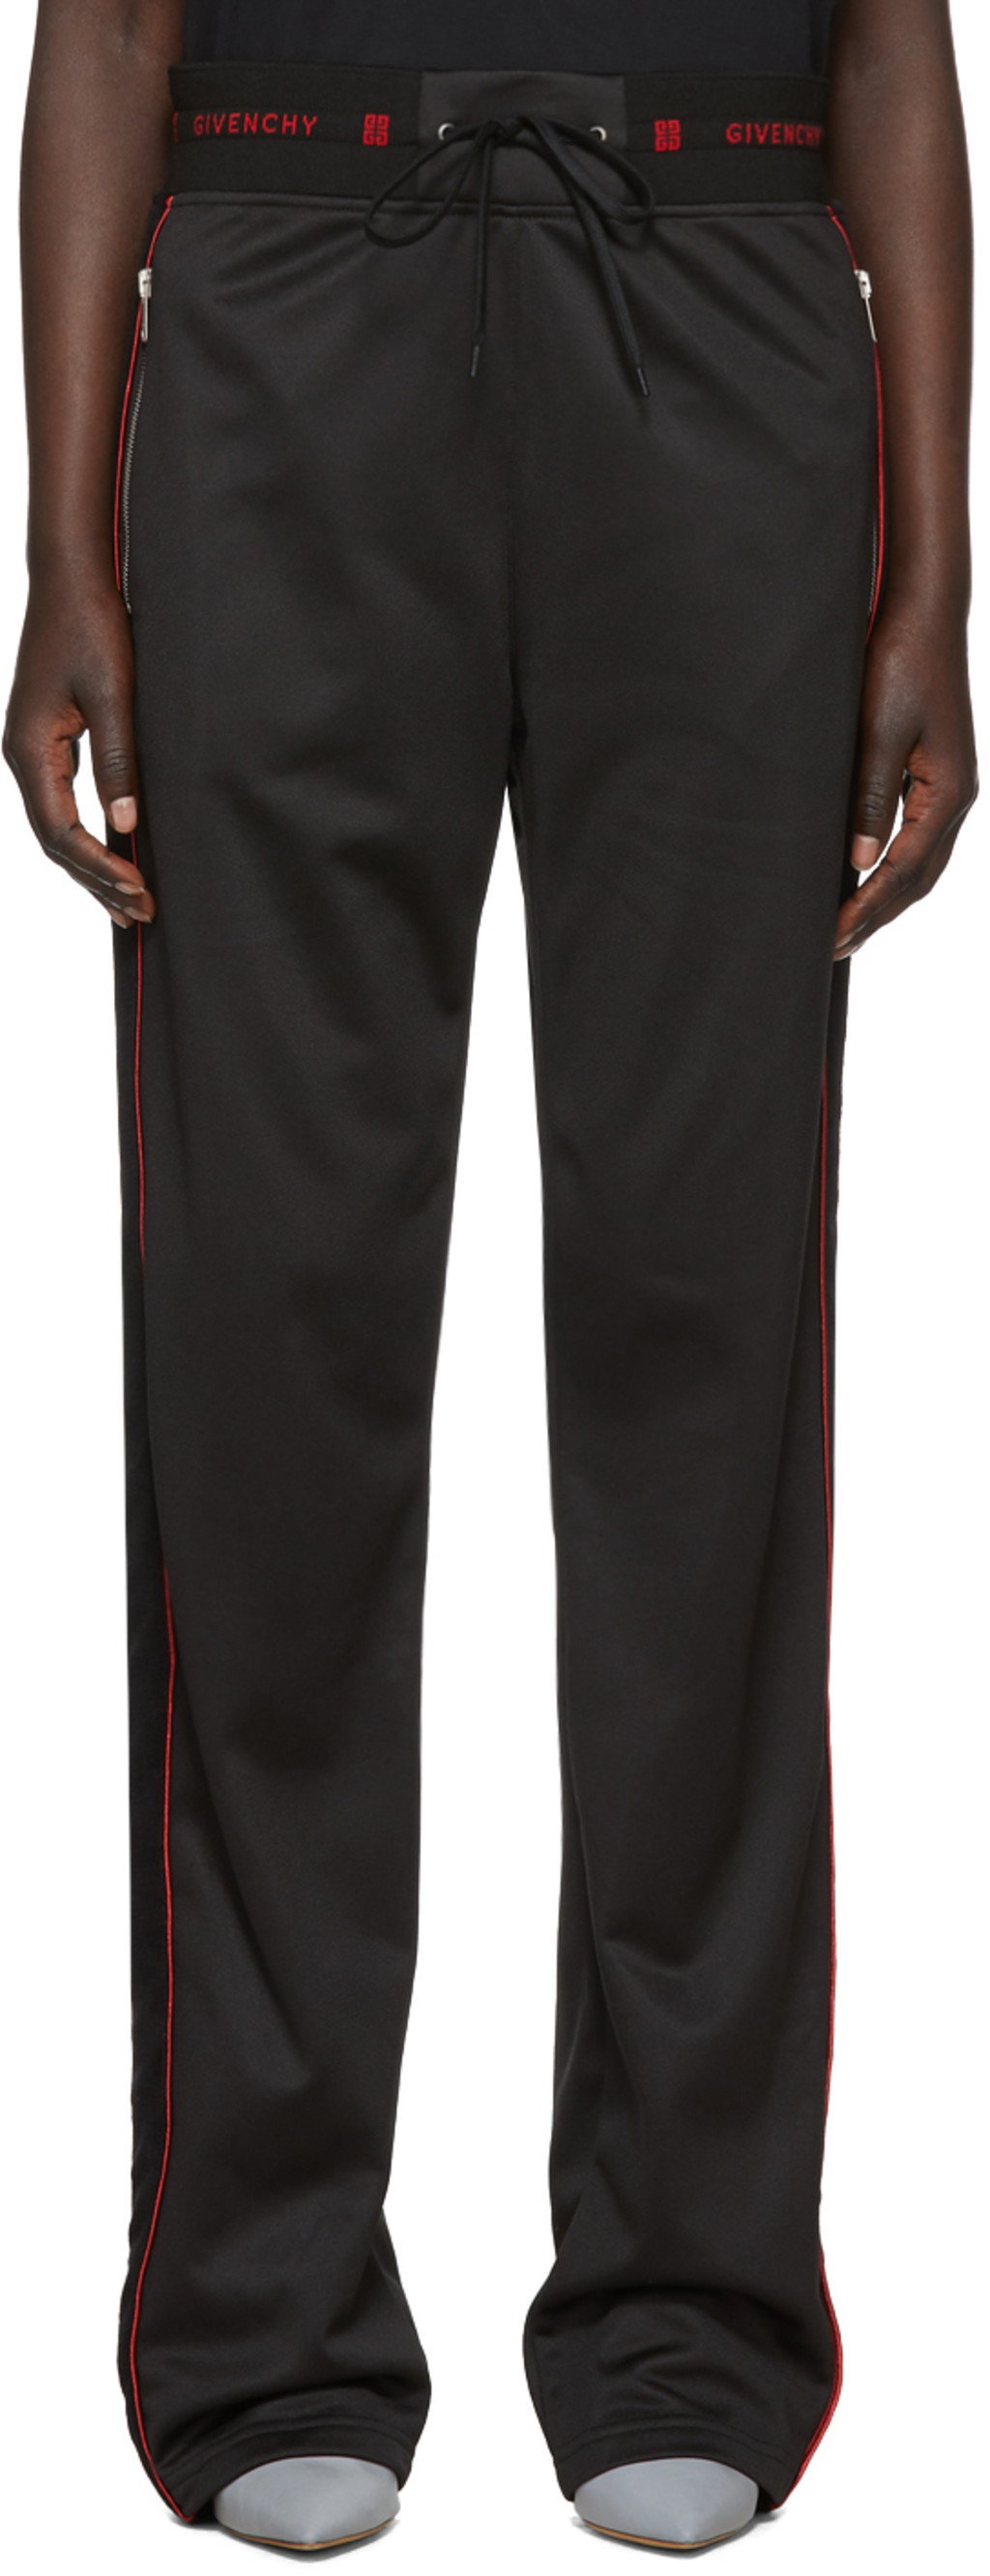 Black Velvet Band Lounge Pants Givenchy Outlet Store Online 0TNAErVF